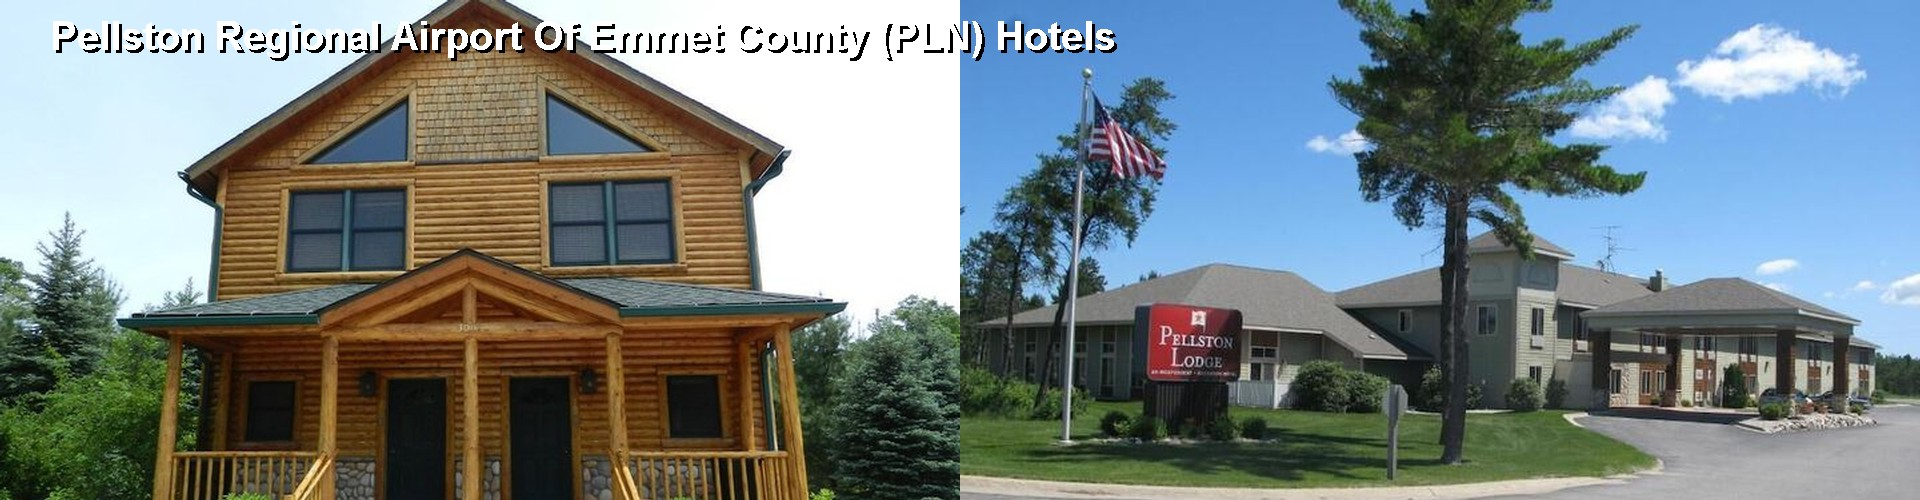 4 Best Hotels near Pellston Regional Airport Of Emmet County (PLN)